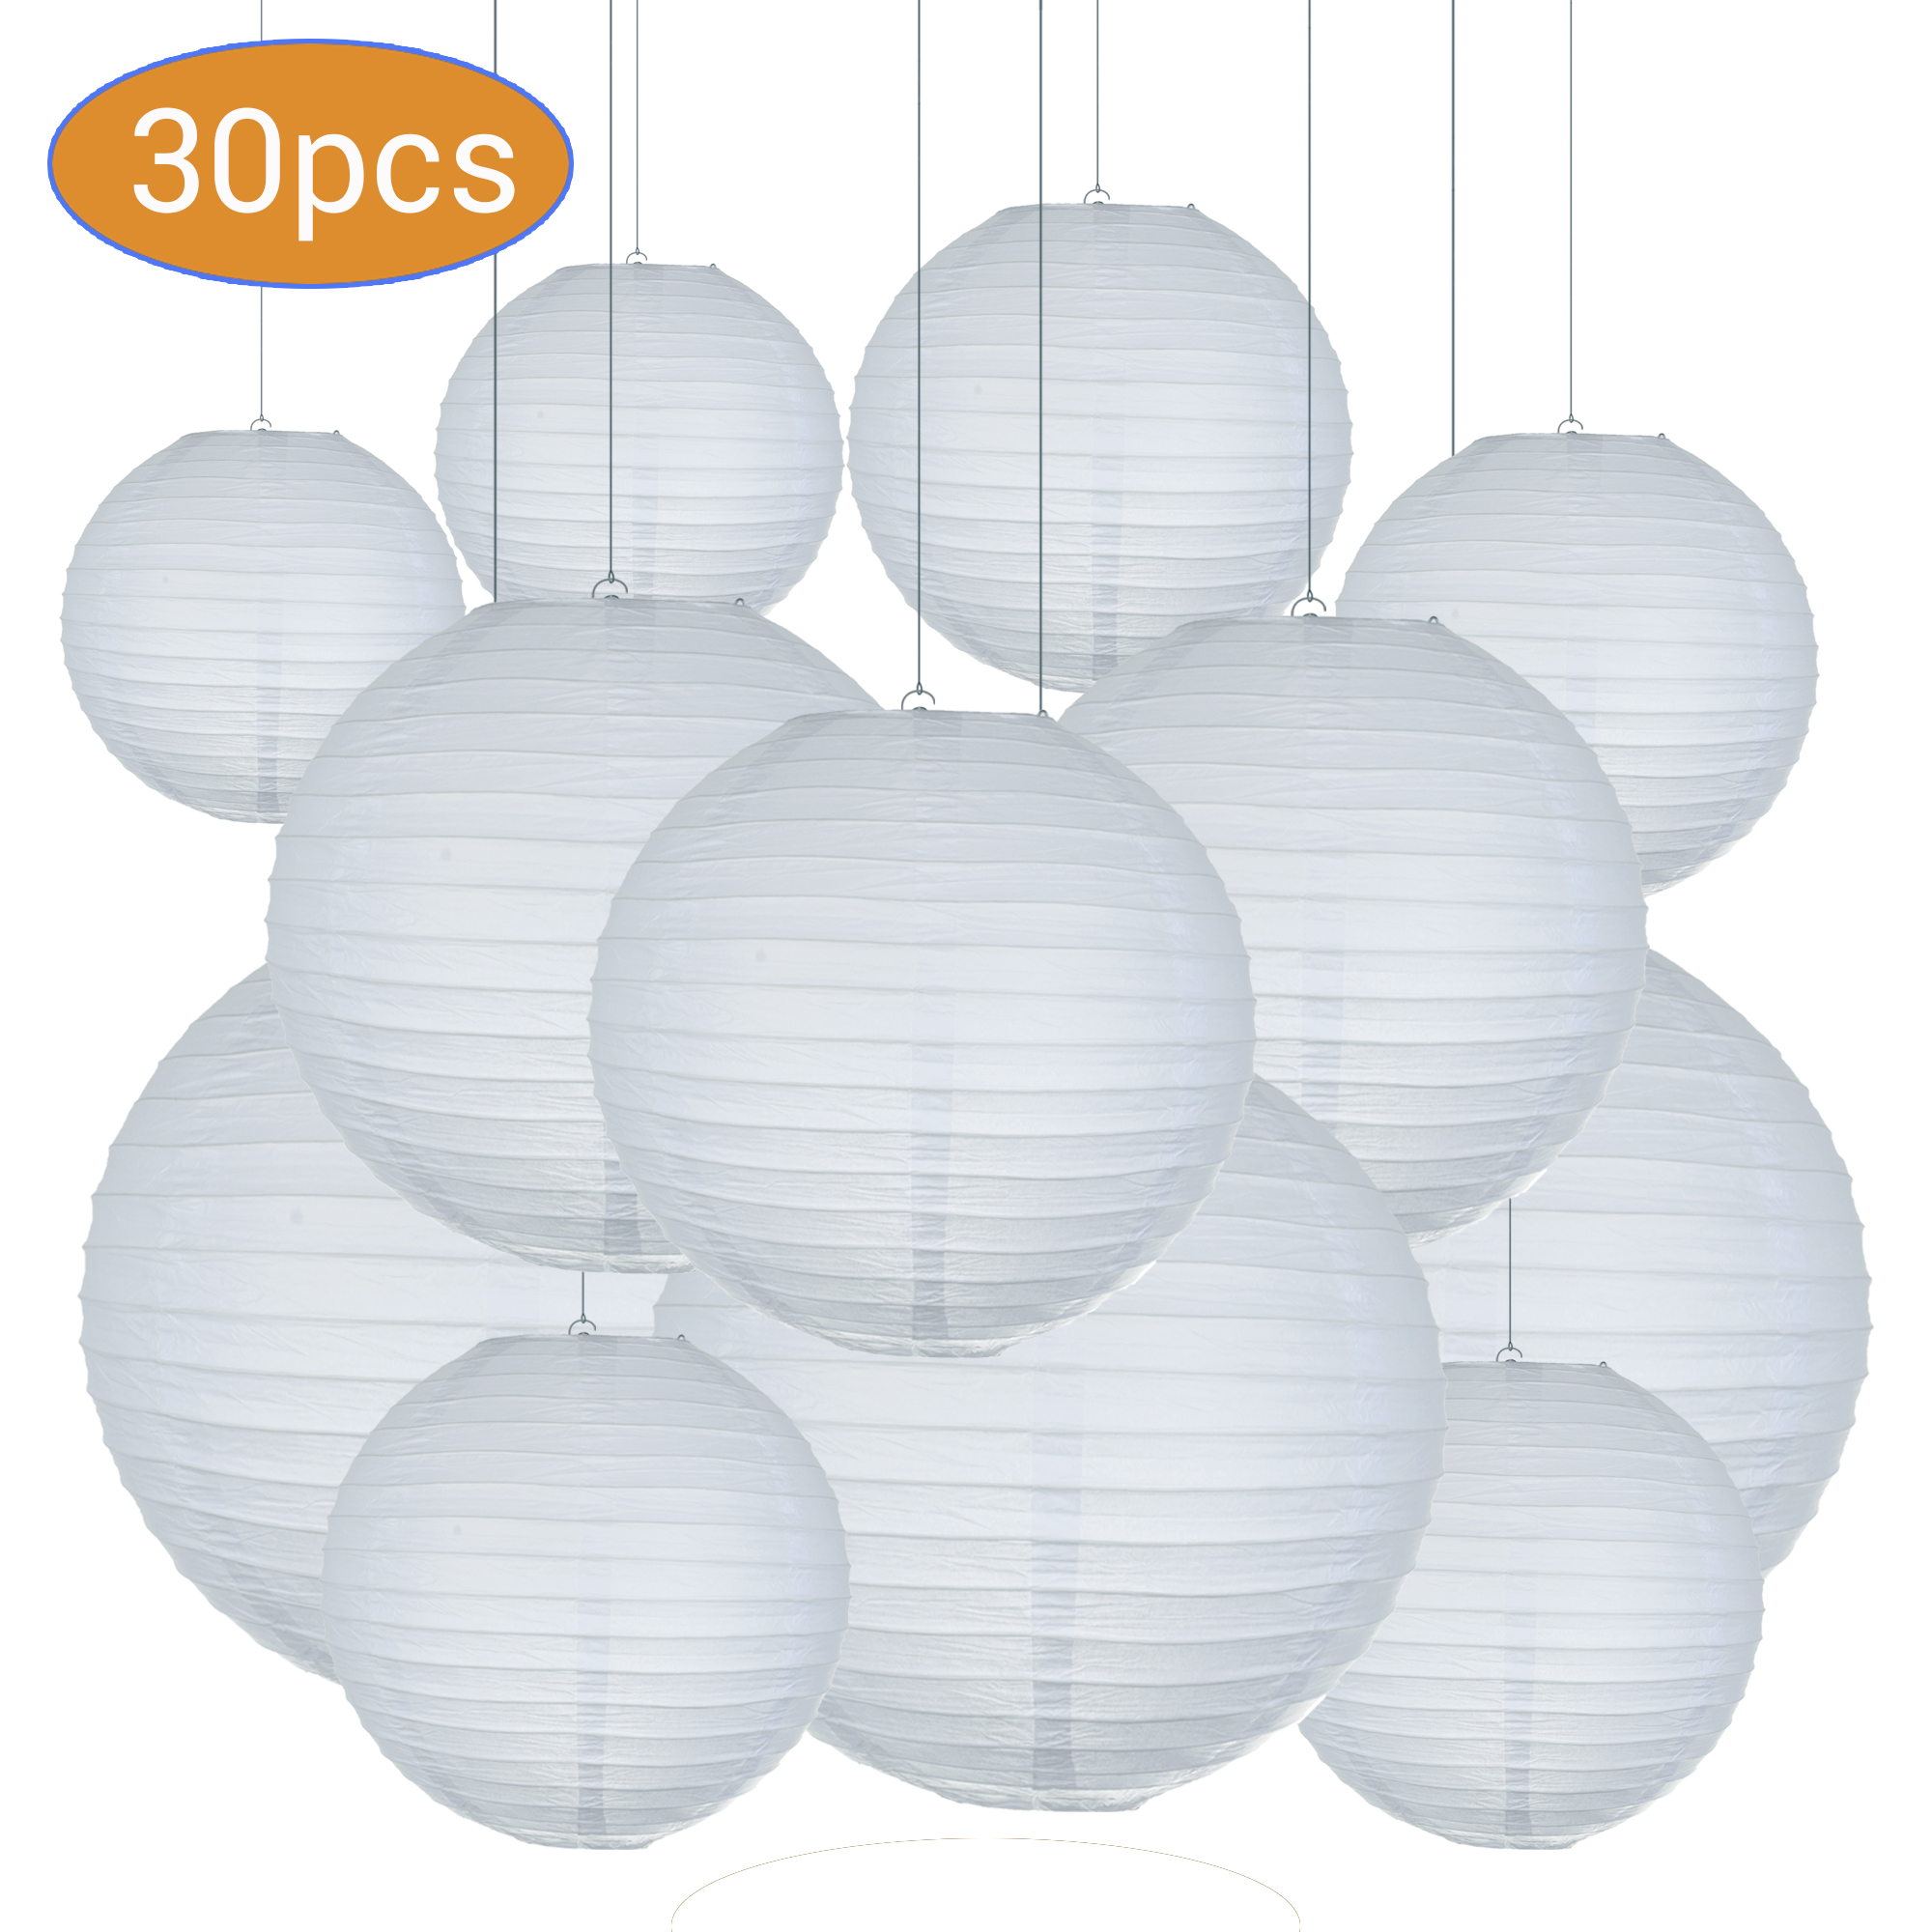 30pcs/Lot Mix Size (15cm,20cm,25cm,30cm) White Paper Lanterns Chinese Paper Ball Lampion For Wedding Party Holiday Decoration